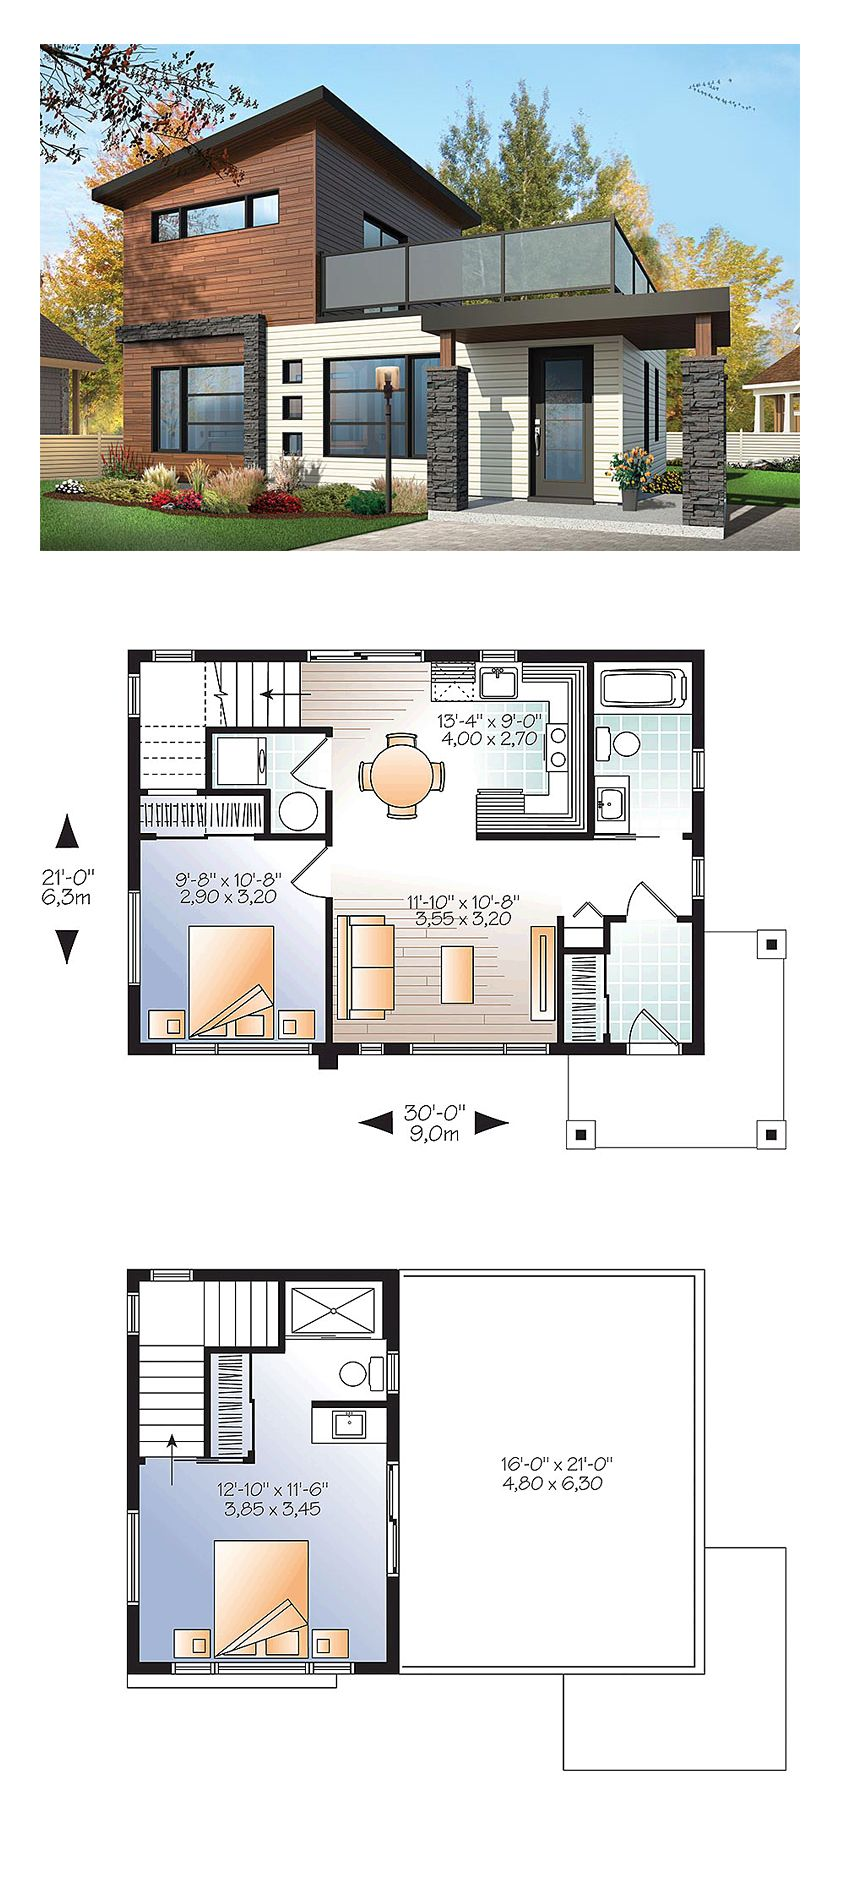 modern 2 bedroom house plans modern house plan 76461 total living area 924 sq ft 19206